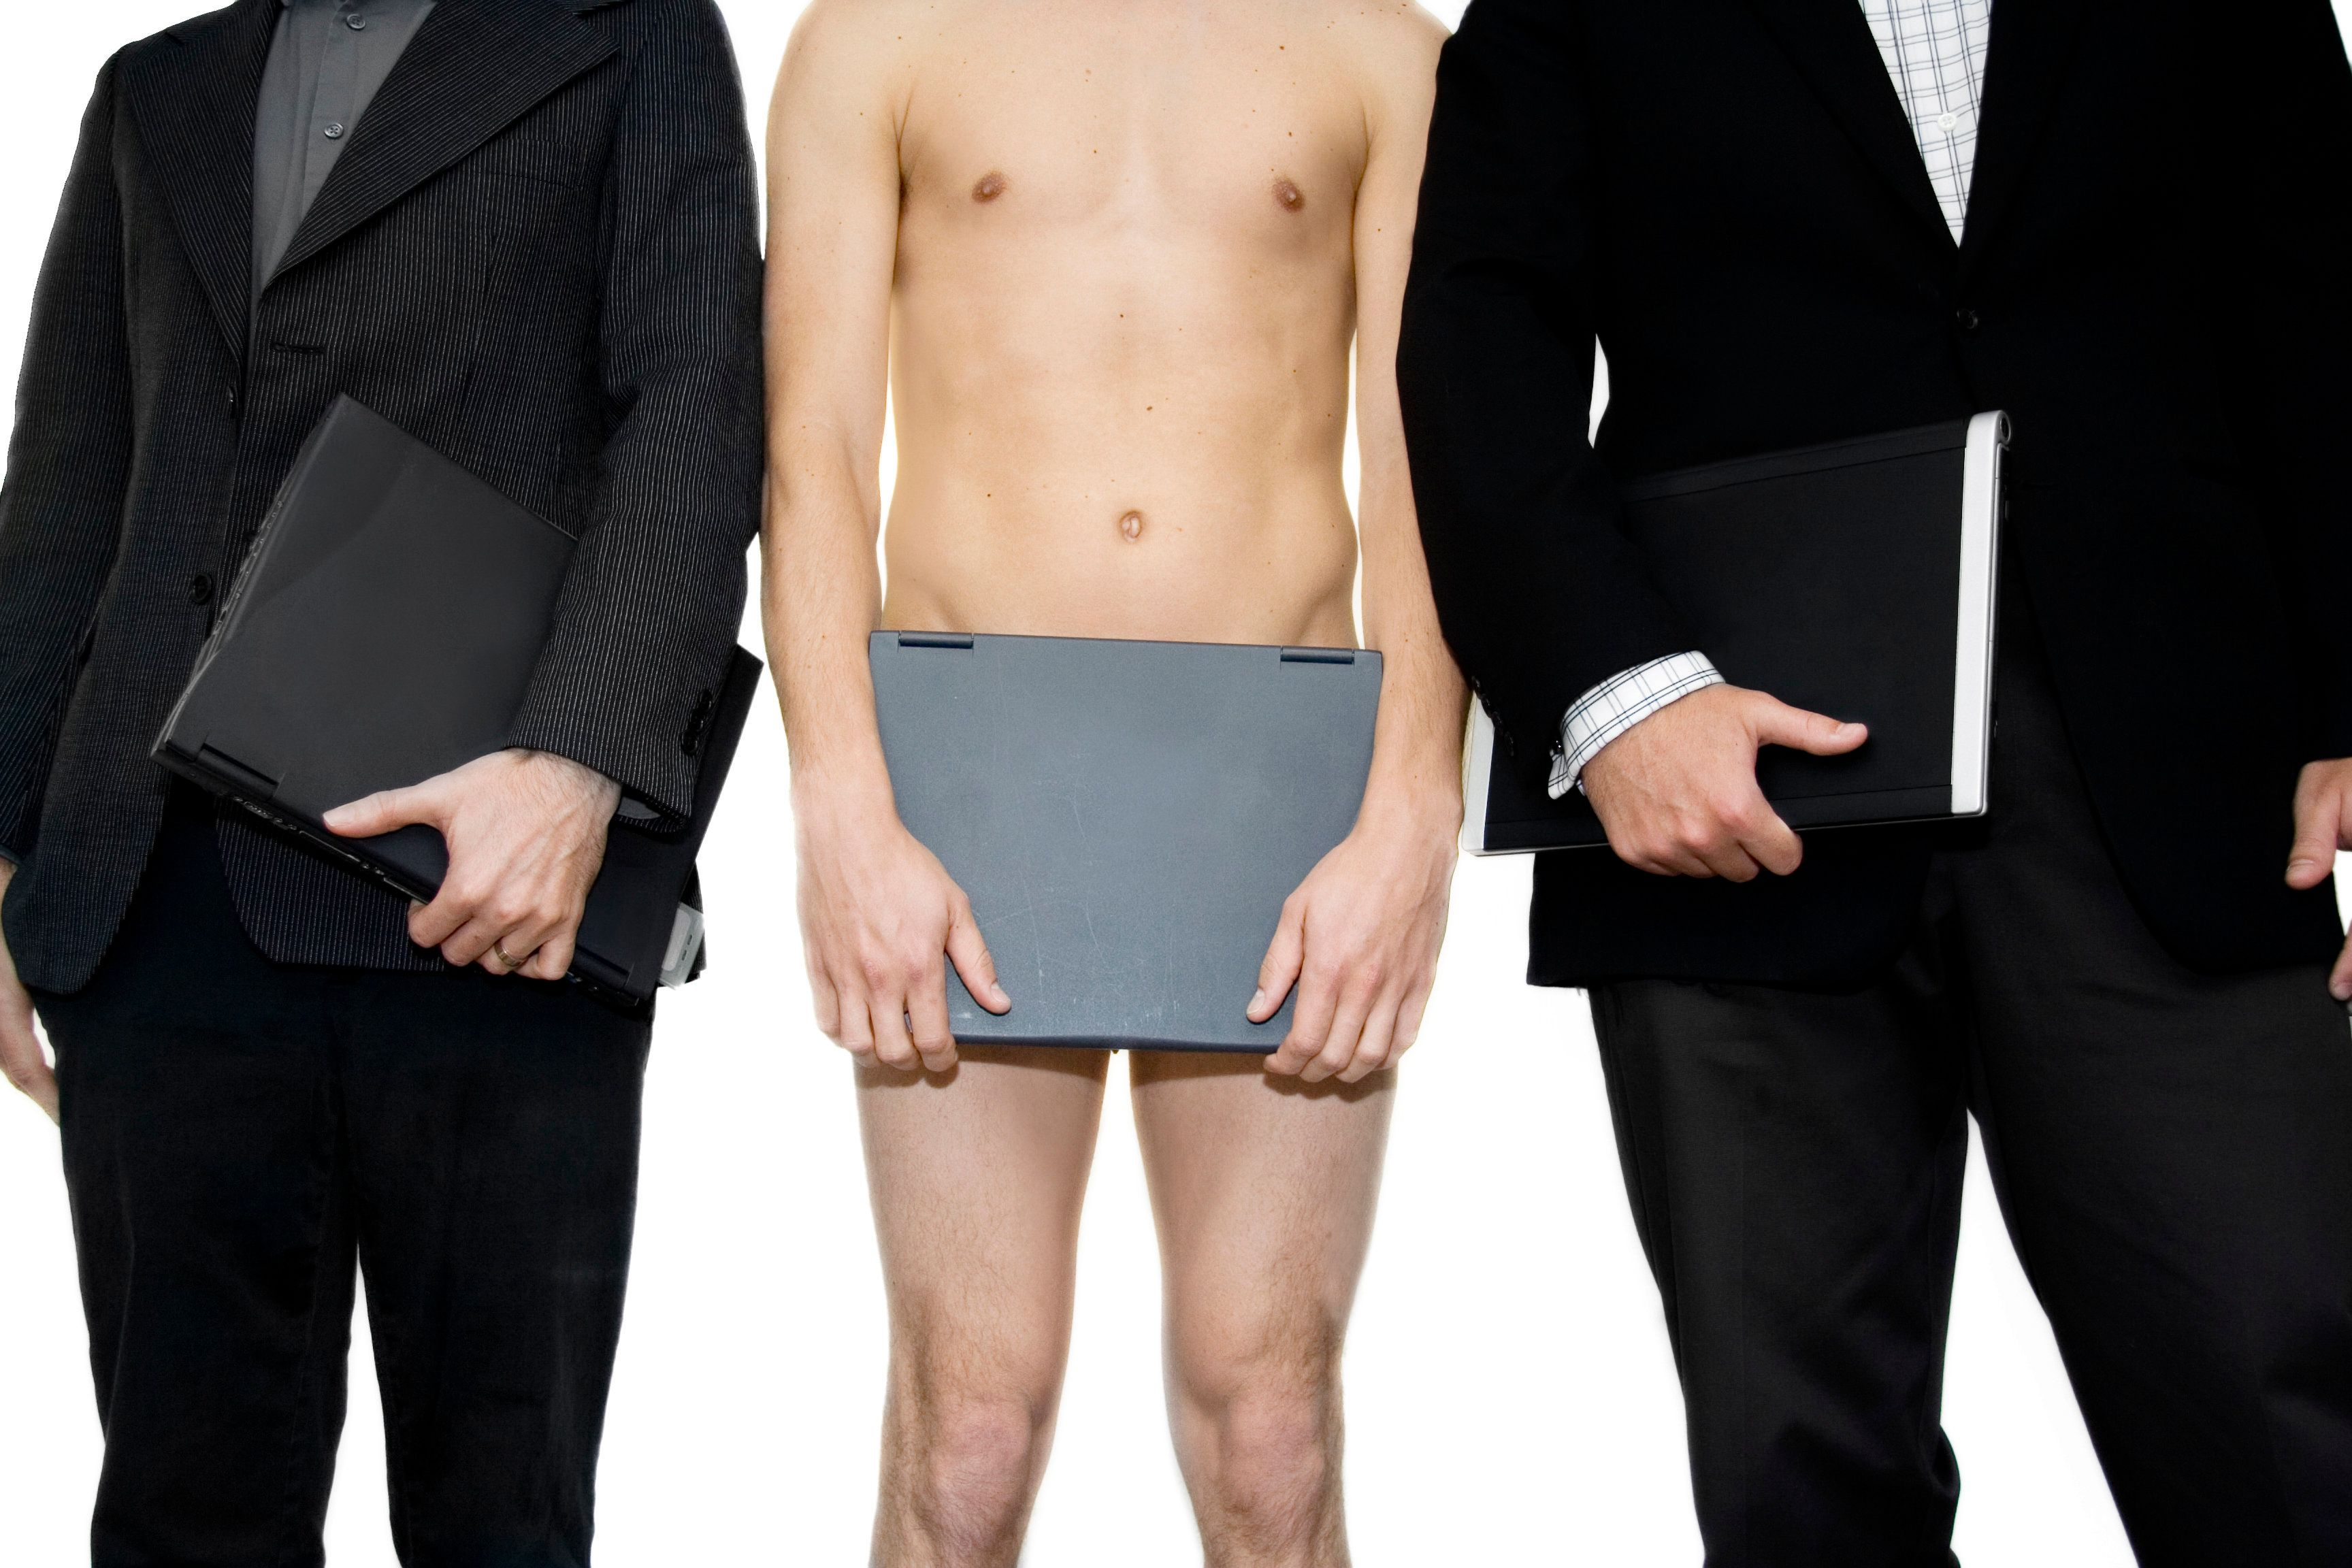 Naked man covering self with laptop standing in between two businessmen